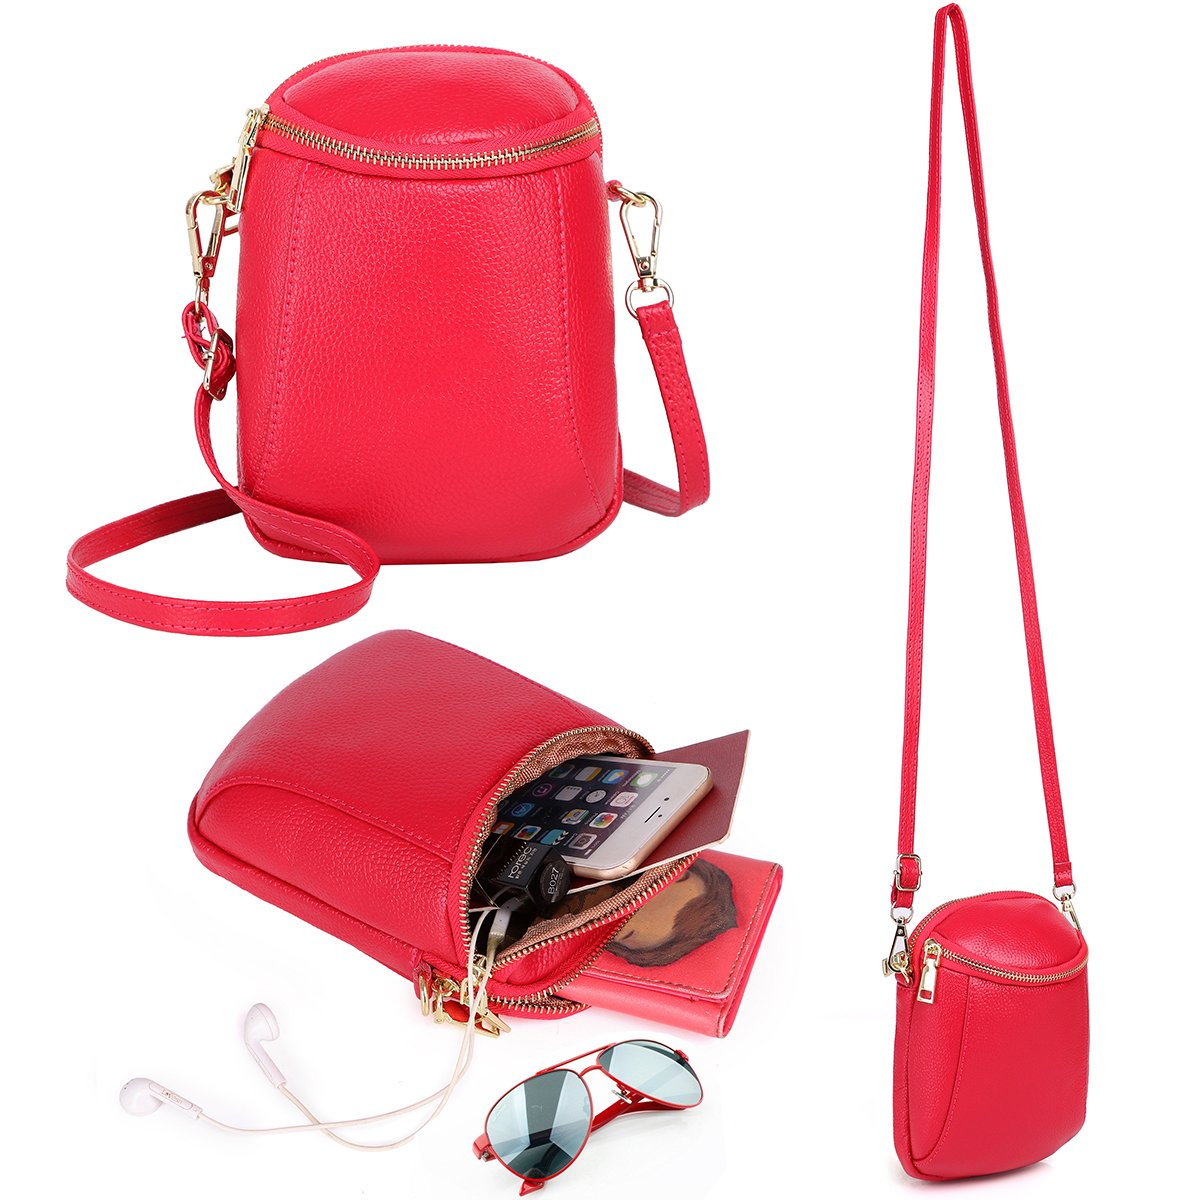 Zg Small Crossbody Purse for Women, Cell Phone Purse Crossbody Fits for IPhone 6 6S 7 8 Plus and Samsung Galaxy S7 S8 Edge Multi-Functional As Backpack